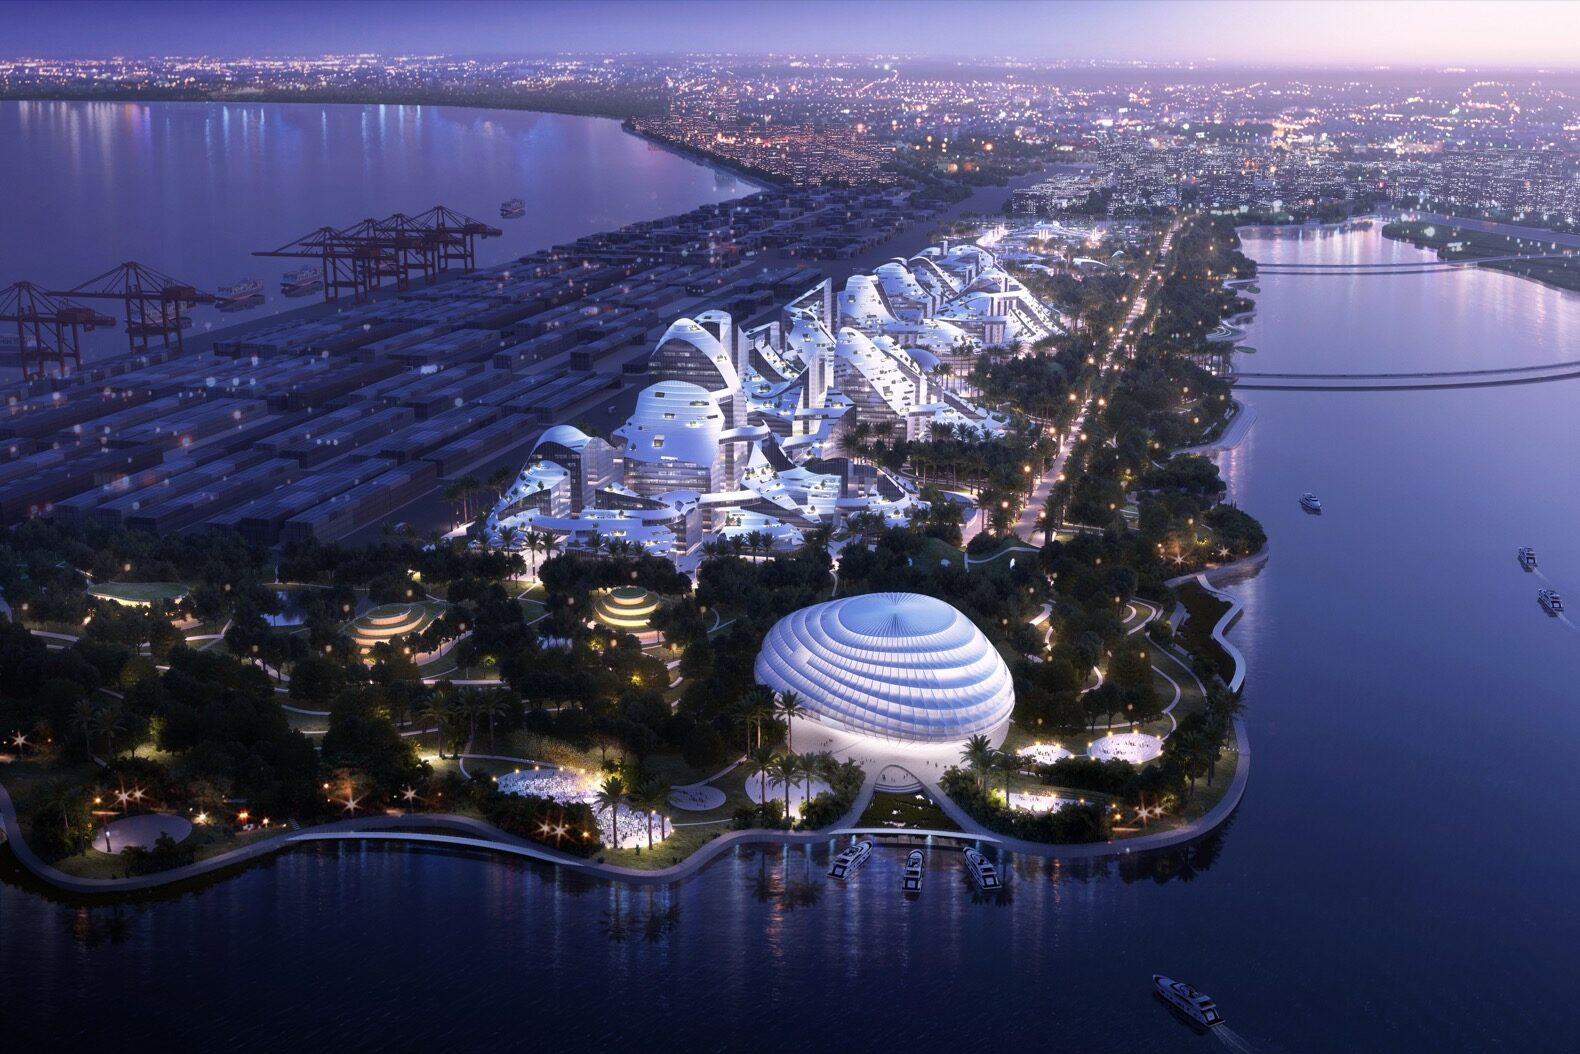 a night view of a birdseye view of a smart city on an island surrounded by water